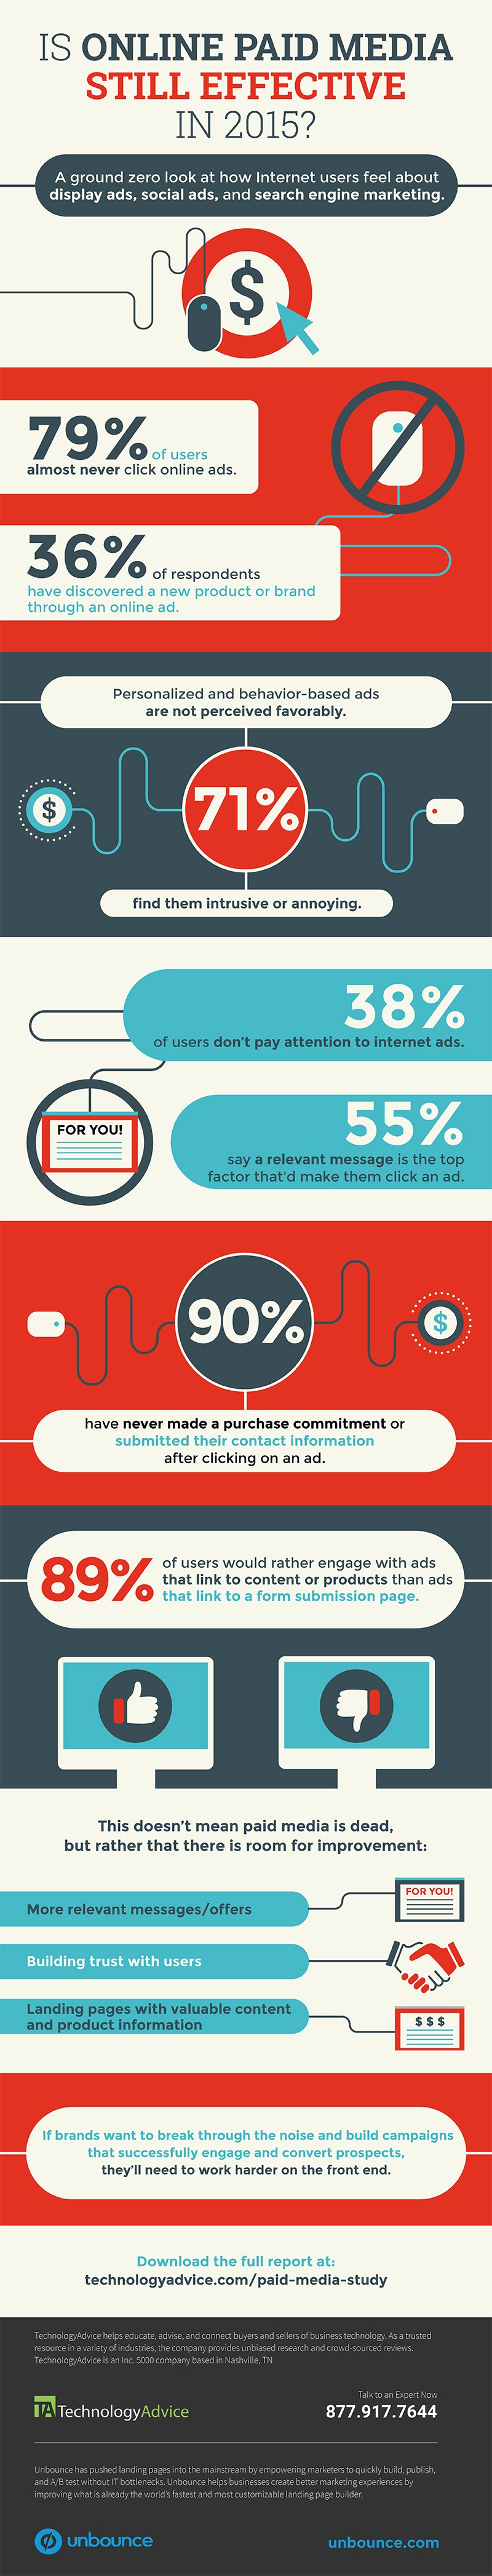 how-effective-are-online-paid-ads-really-infographic